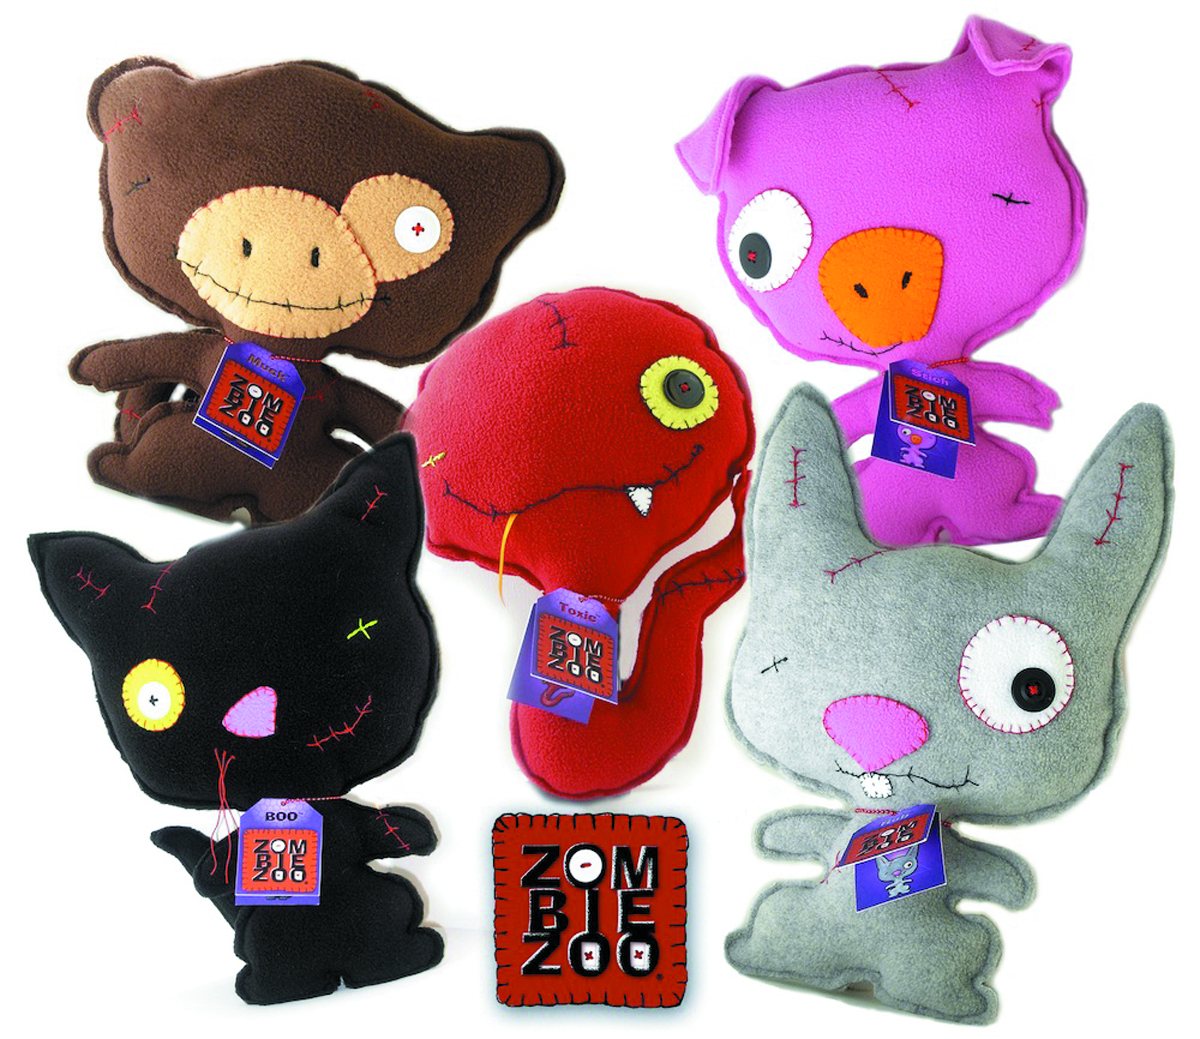 ZOMBIE ZOO 12IN MUCK CLASSIC PLUSH